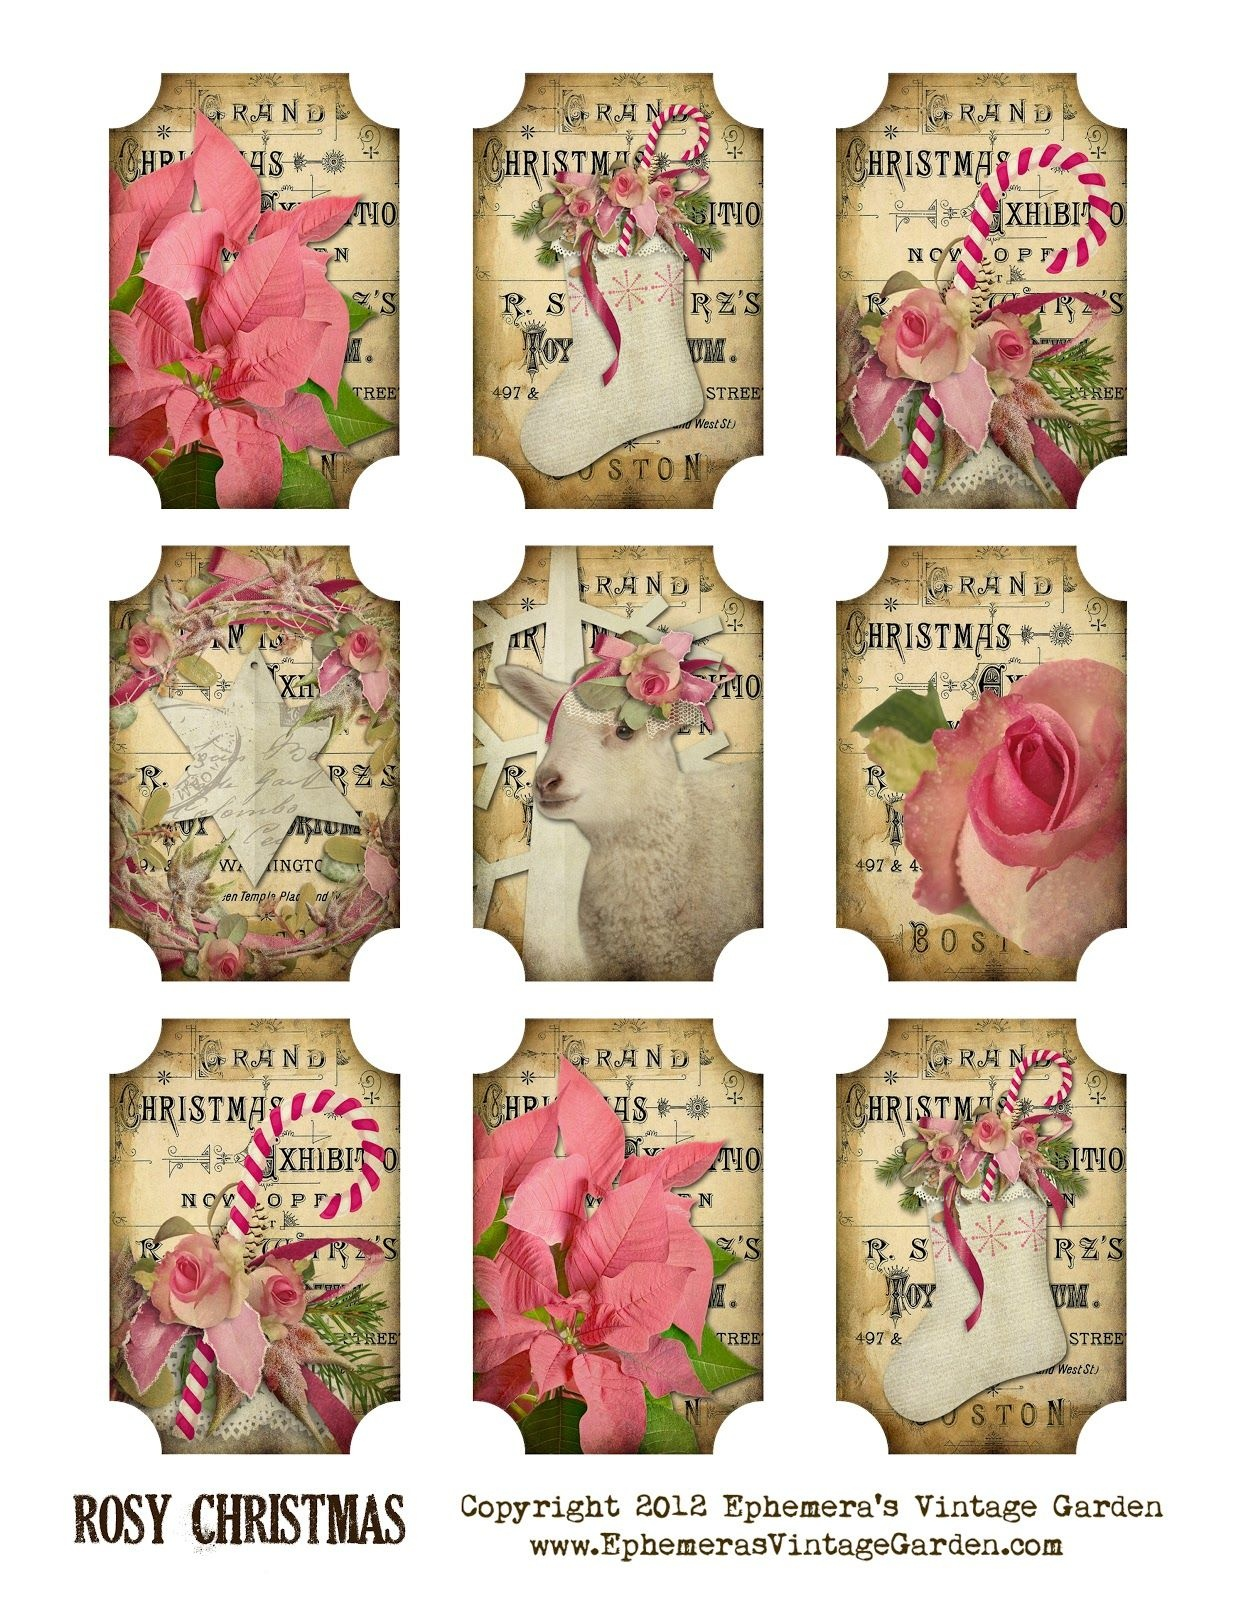 Ephemera's Vintage Garden: Free Printable: Rosy Christmas Gift Tags - Free Printable Vintage Christmas Tags For Gifts